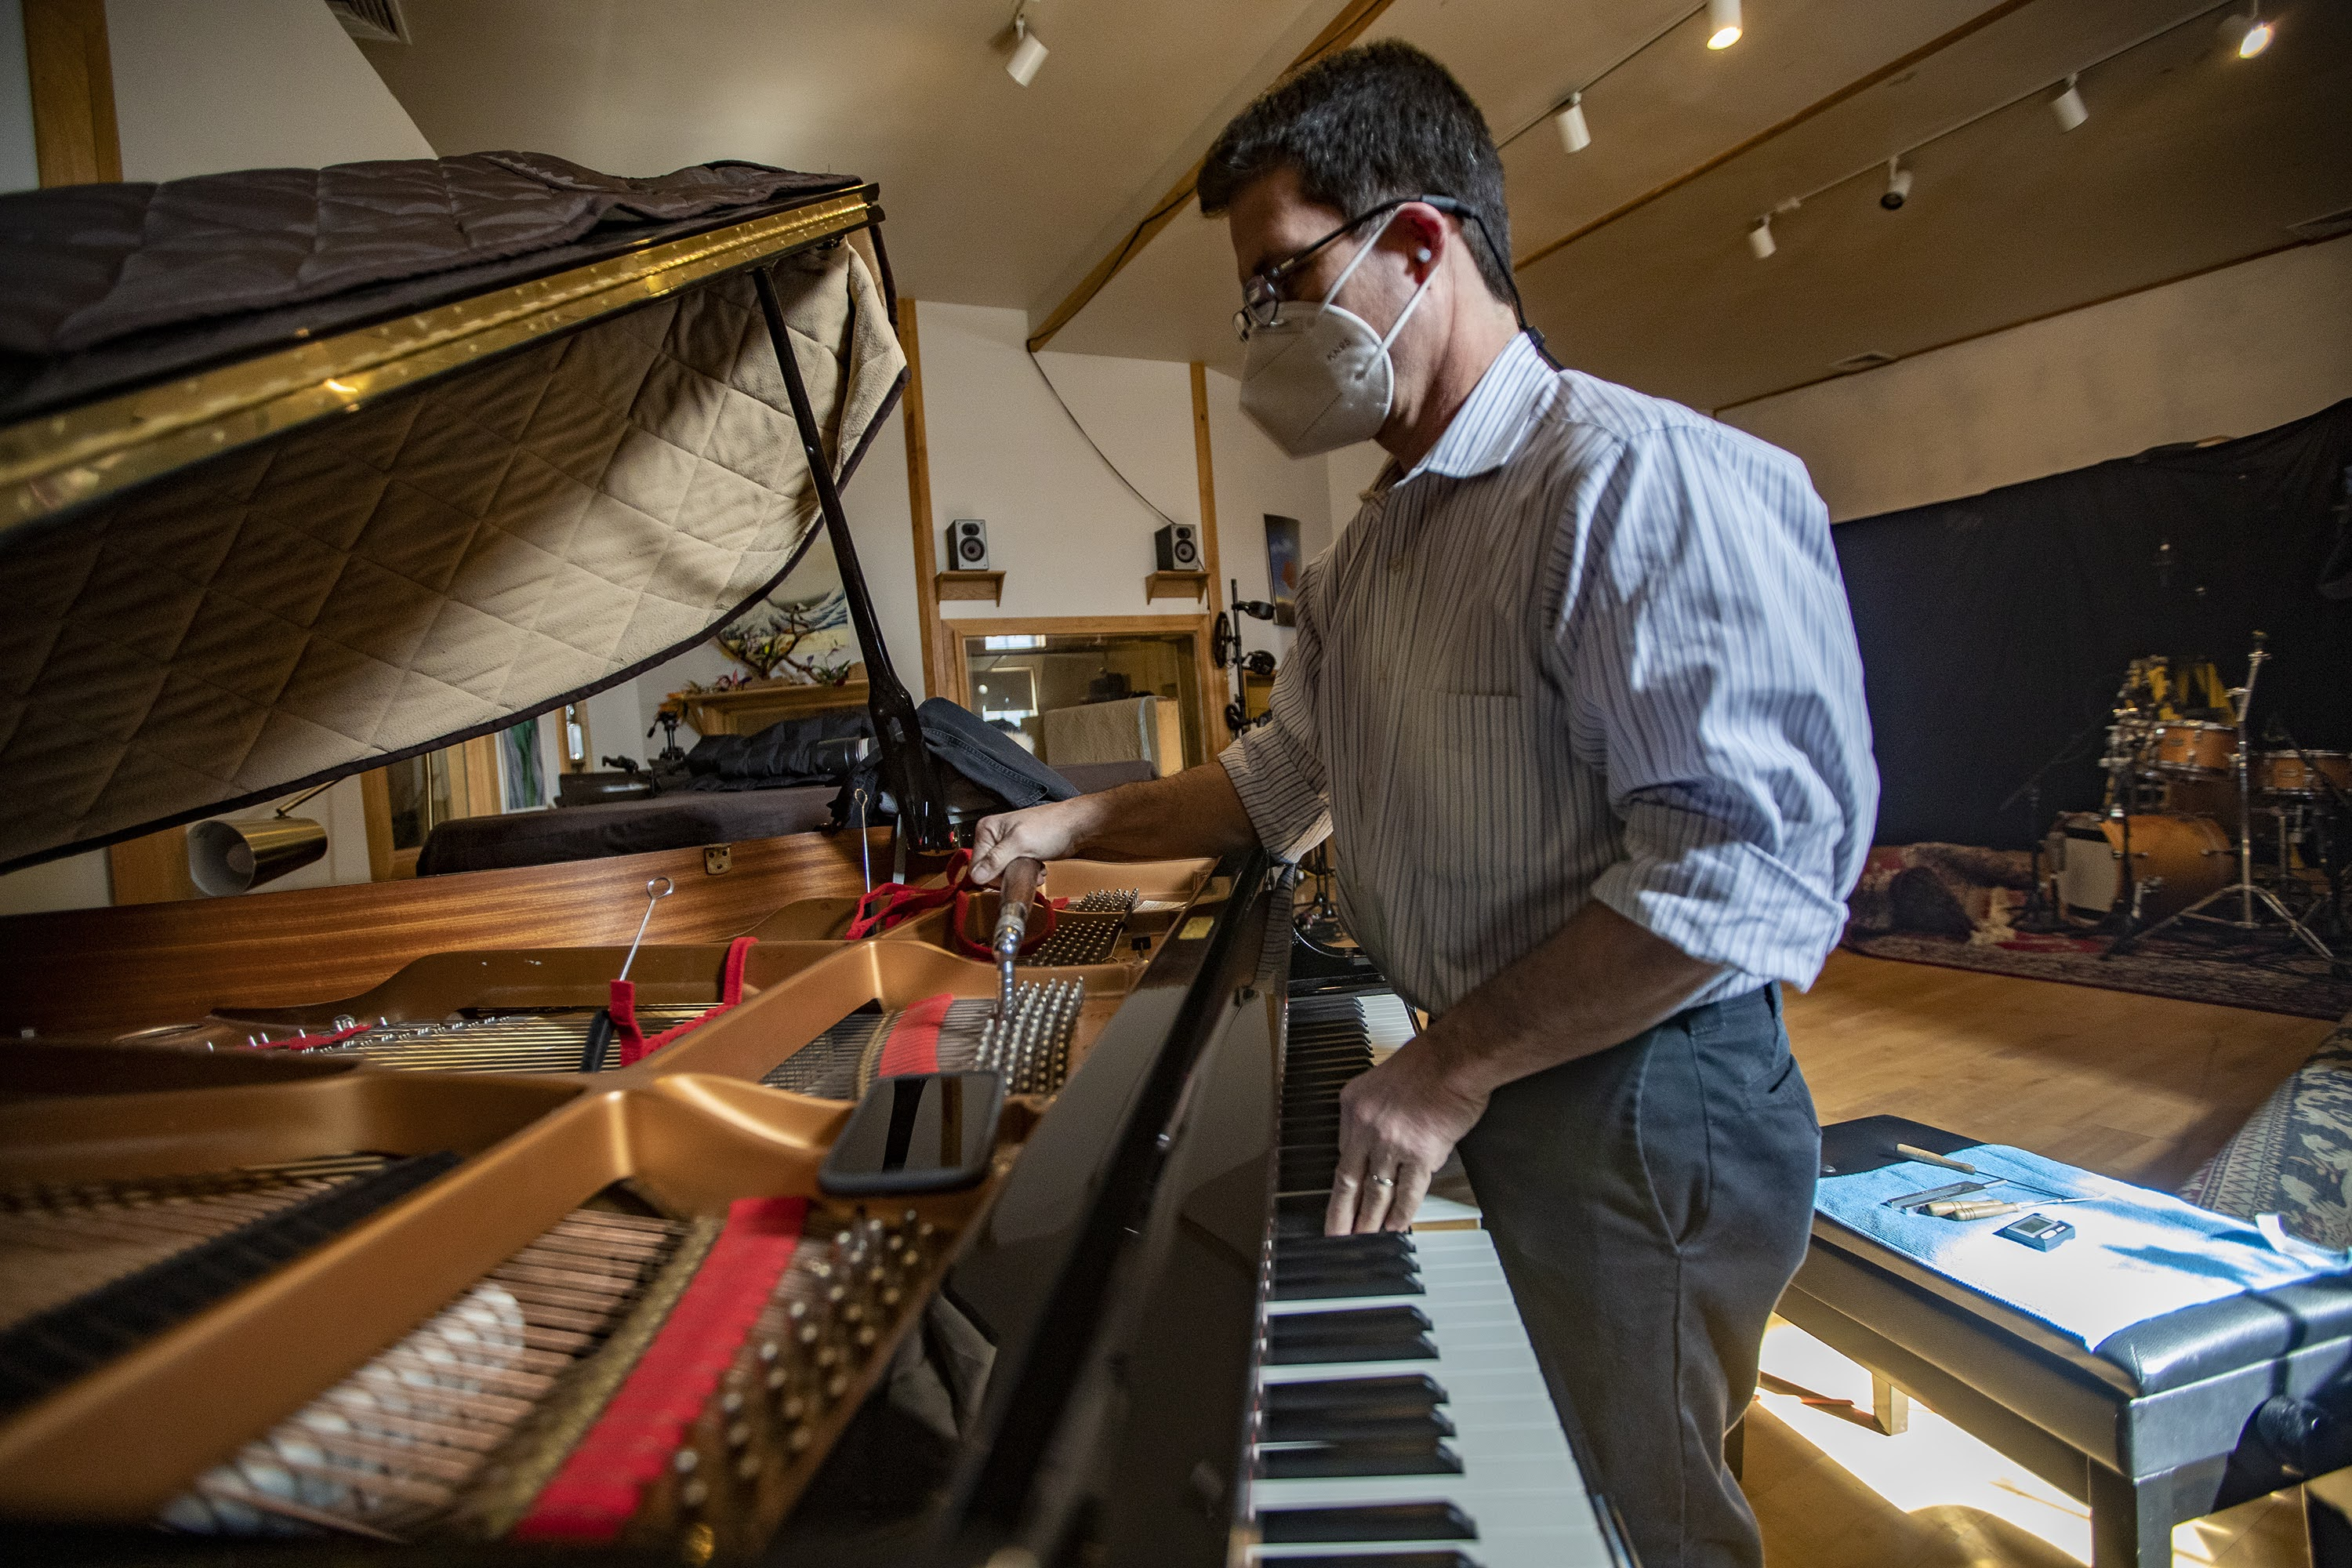 Fred Mudge uses a tuning hammer to tune a Yamaha C7 piano at the Wellspring Studio in Acton. (Jesse Costa/WBUR)